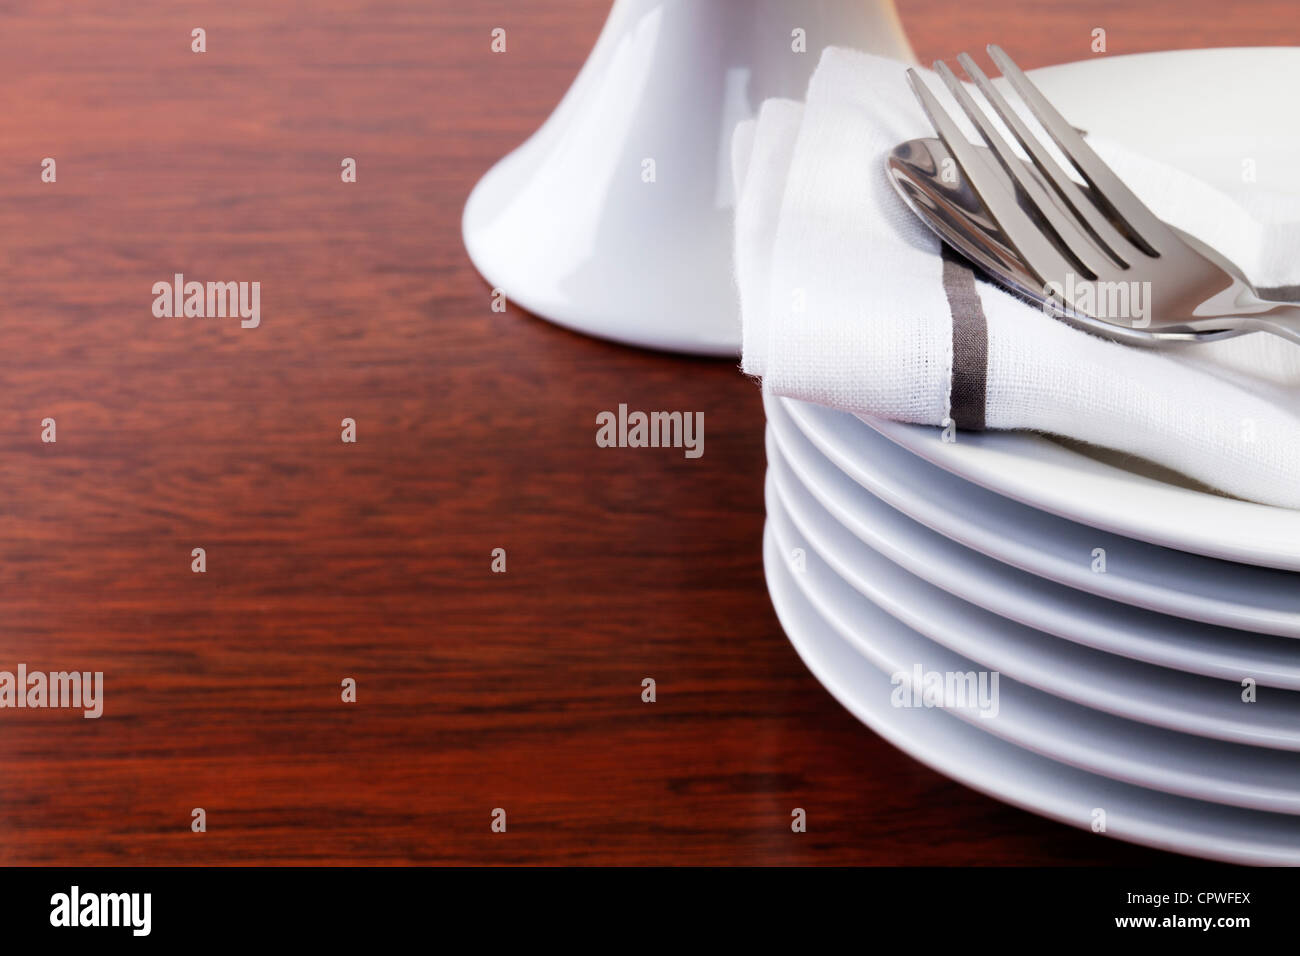 Stack of small or dessert plates on a dark oak surface, cake stand in background. - Stock Image